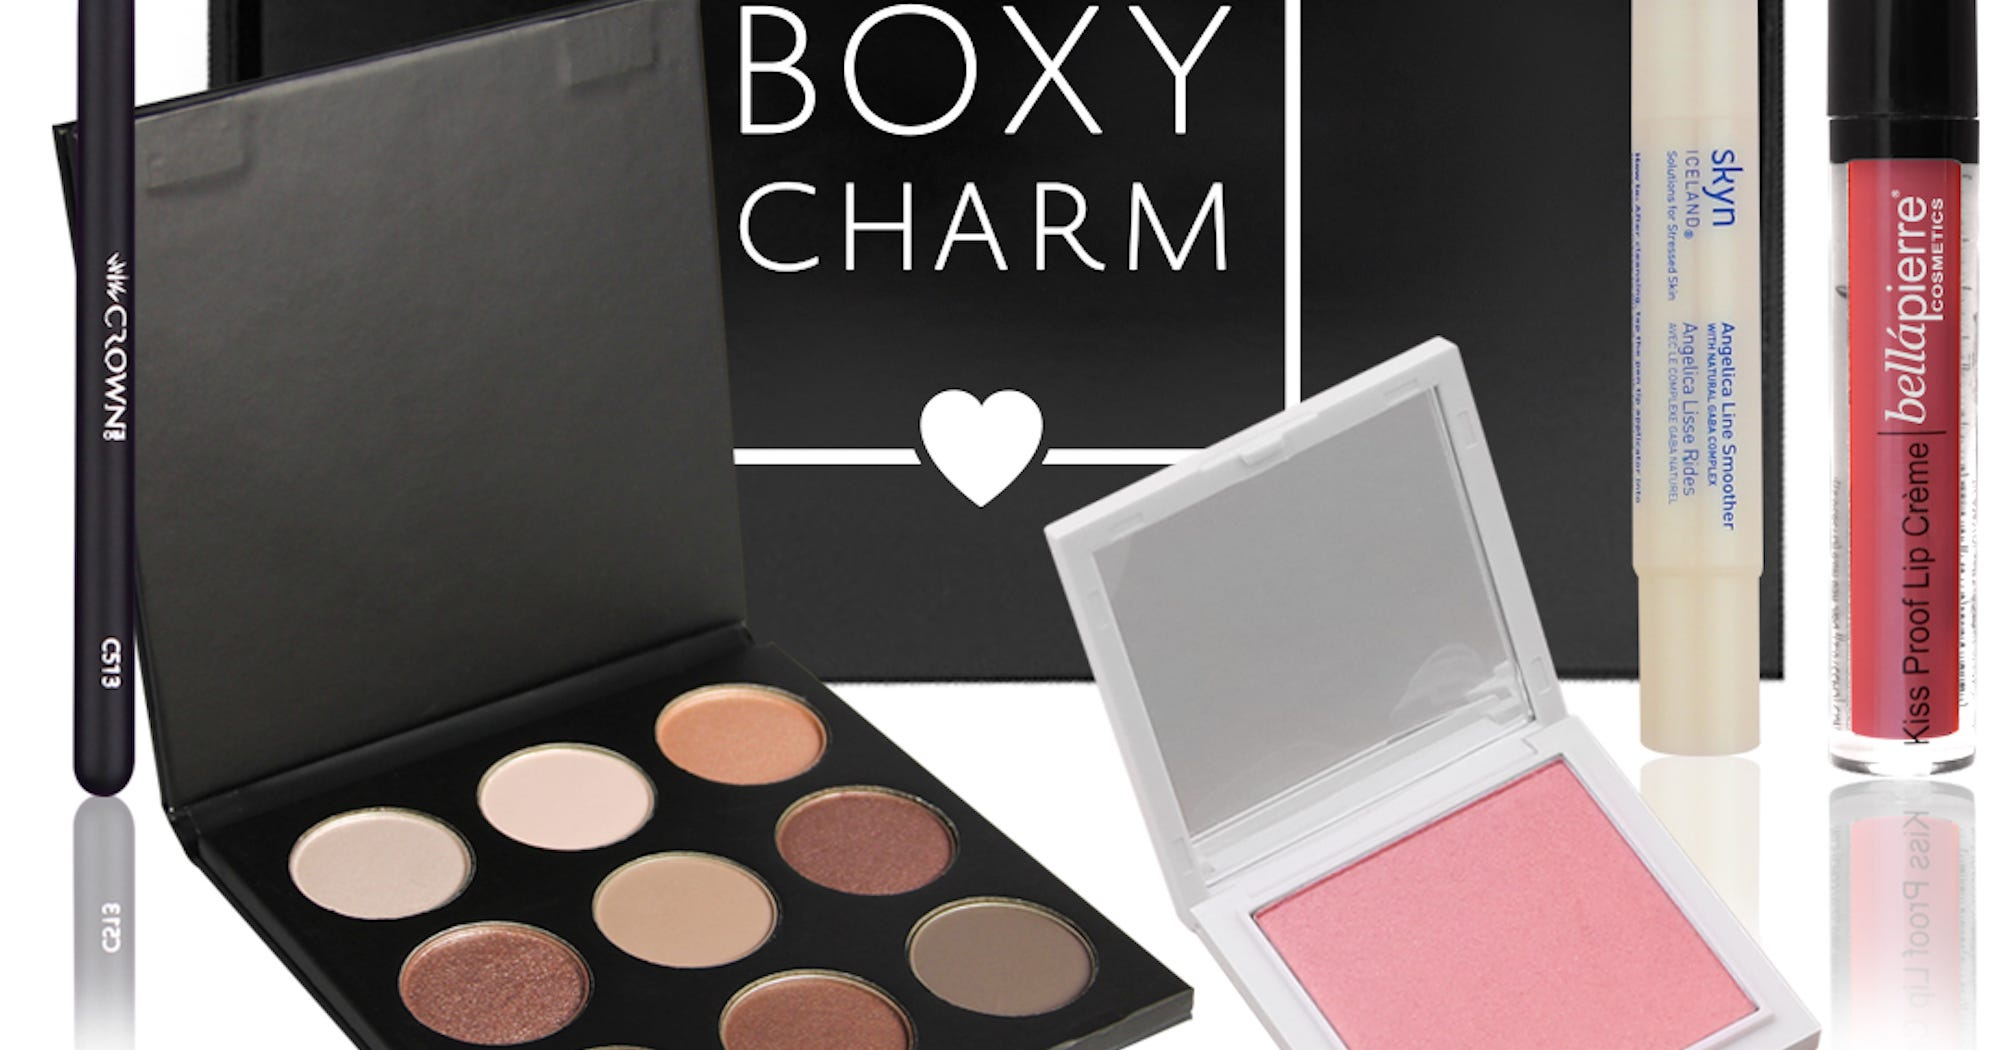 These 8 Beauty Boxes Give You The Best Bang For Your Buck